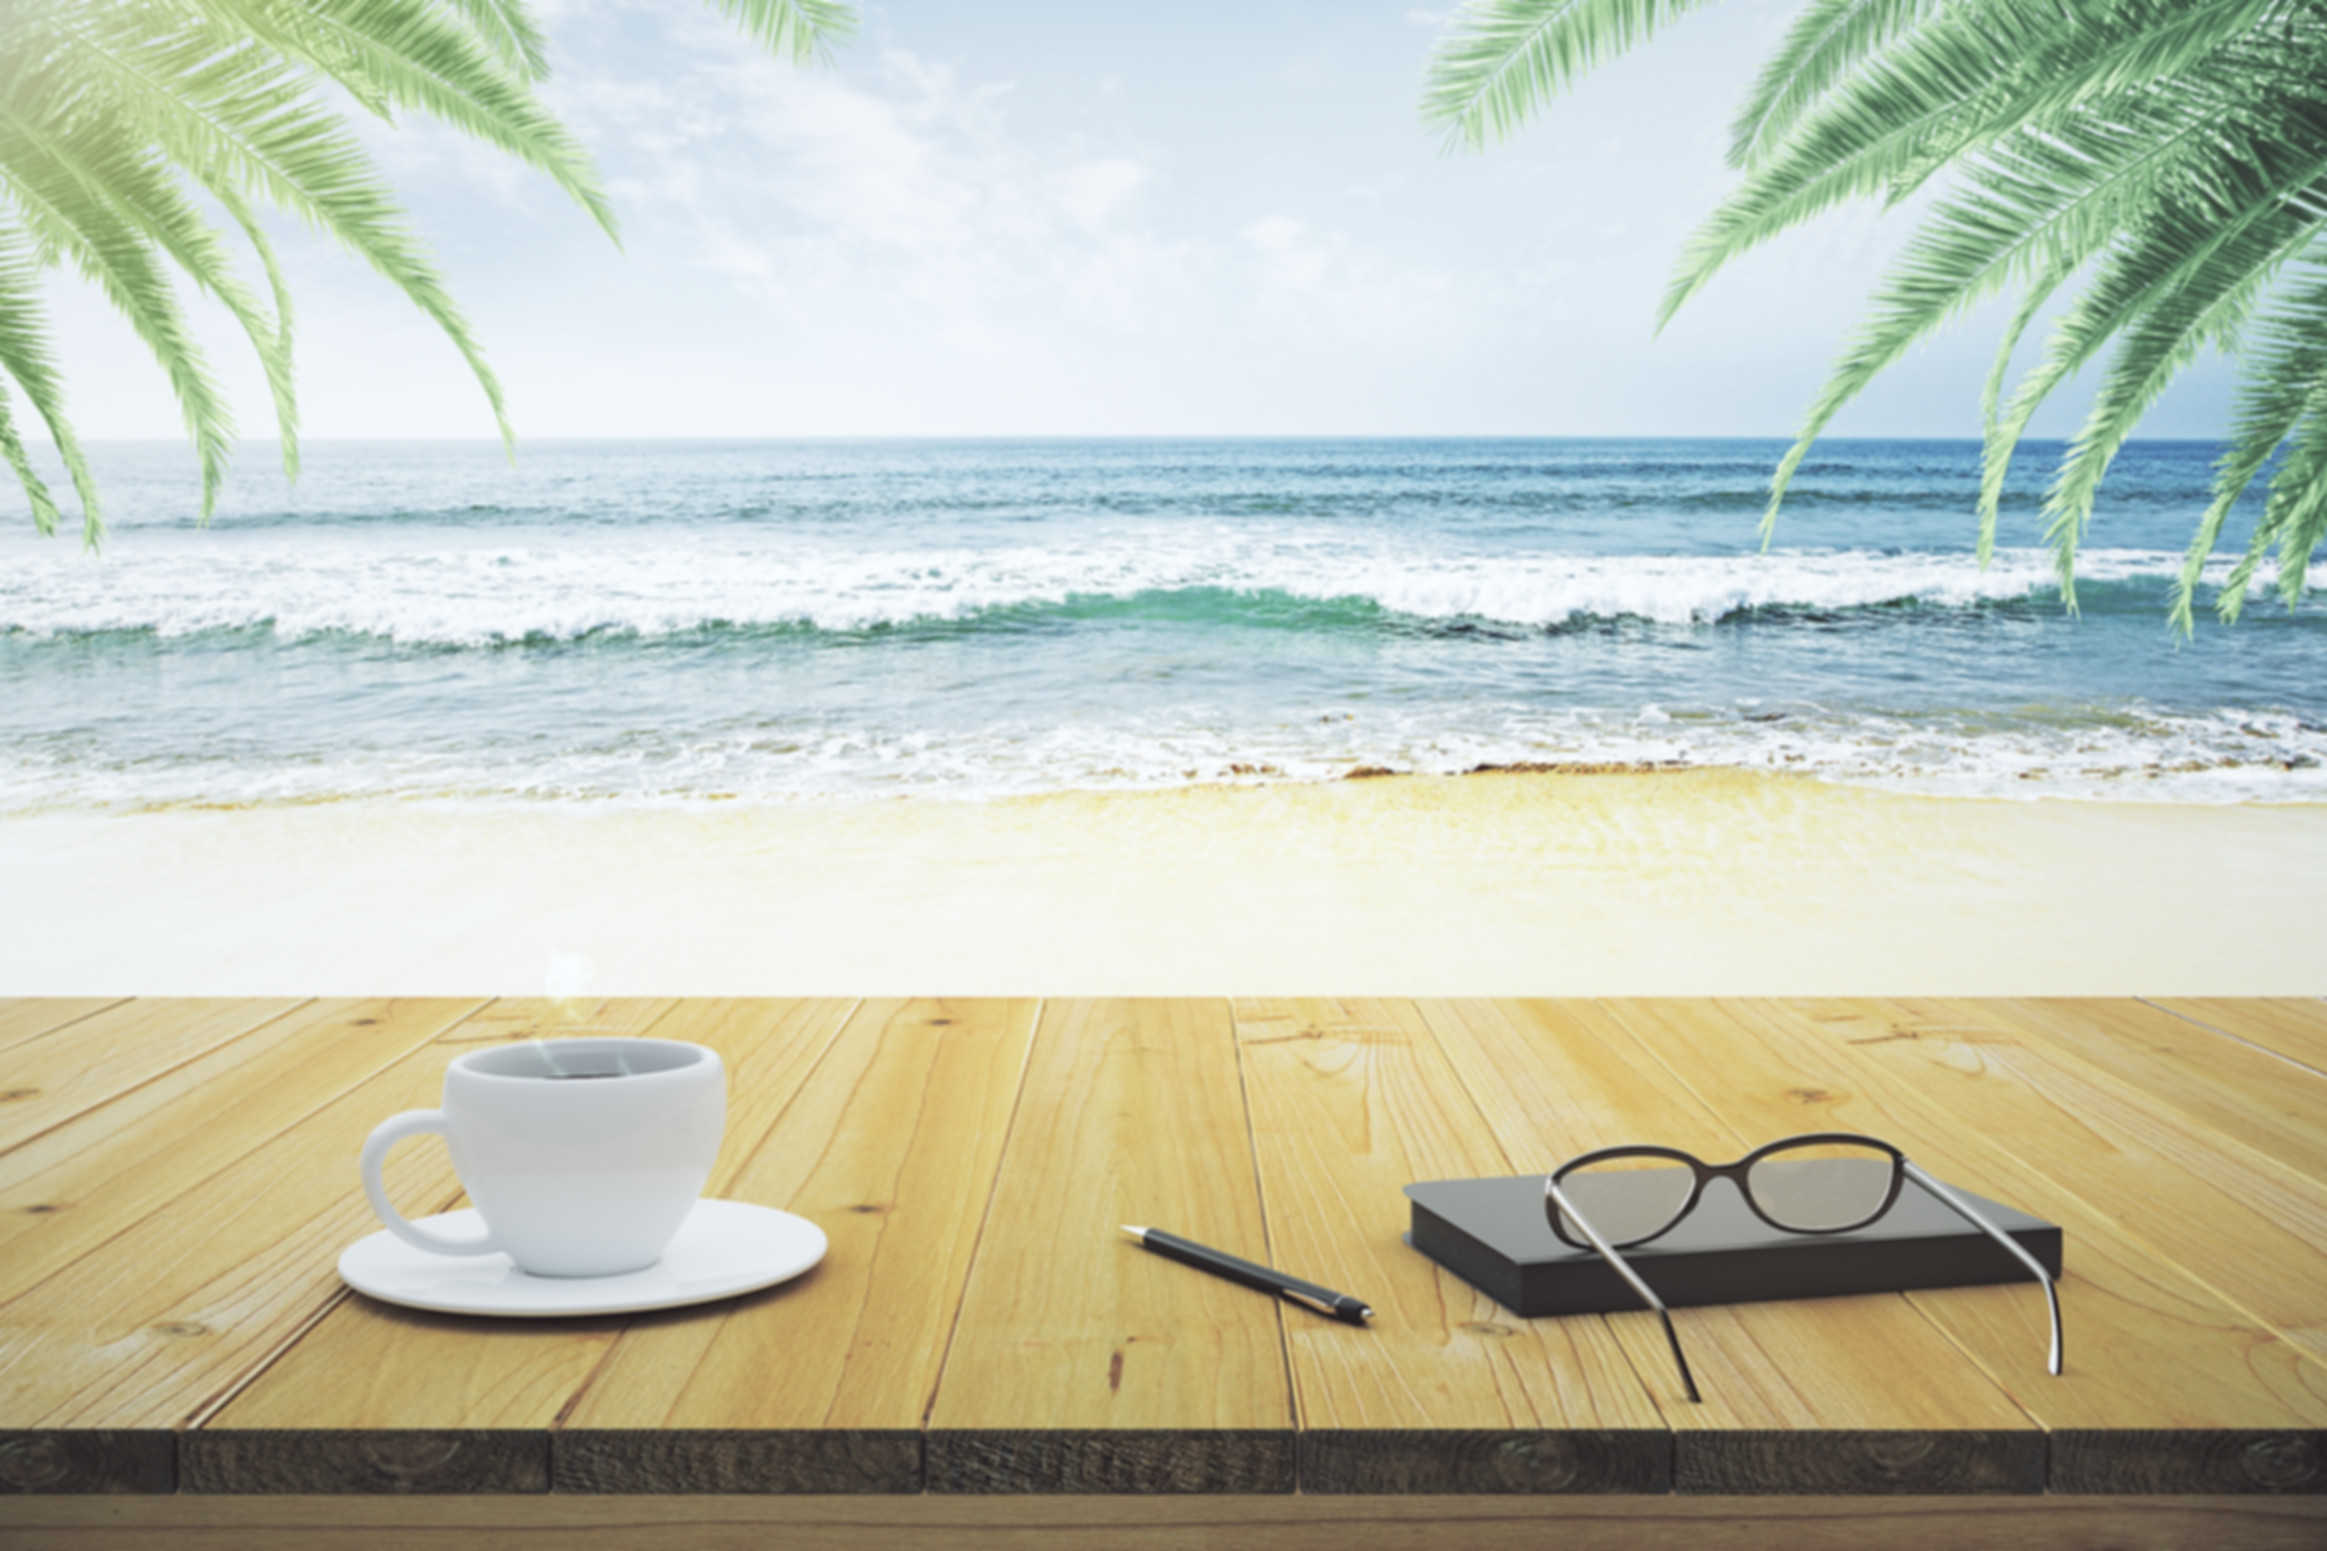 Wooden table with cup of coffee, eyeglas